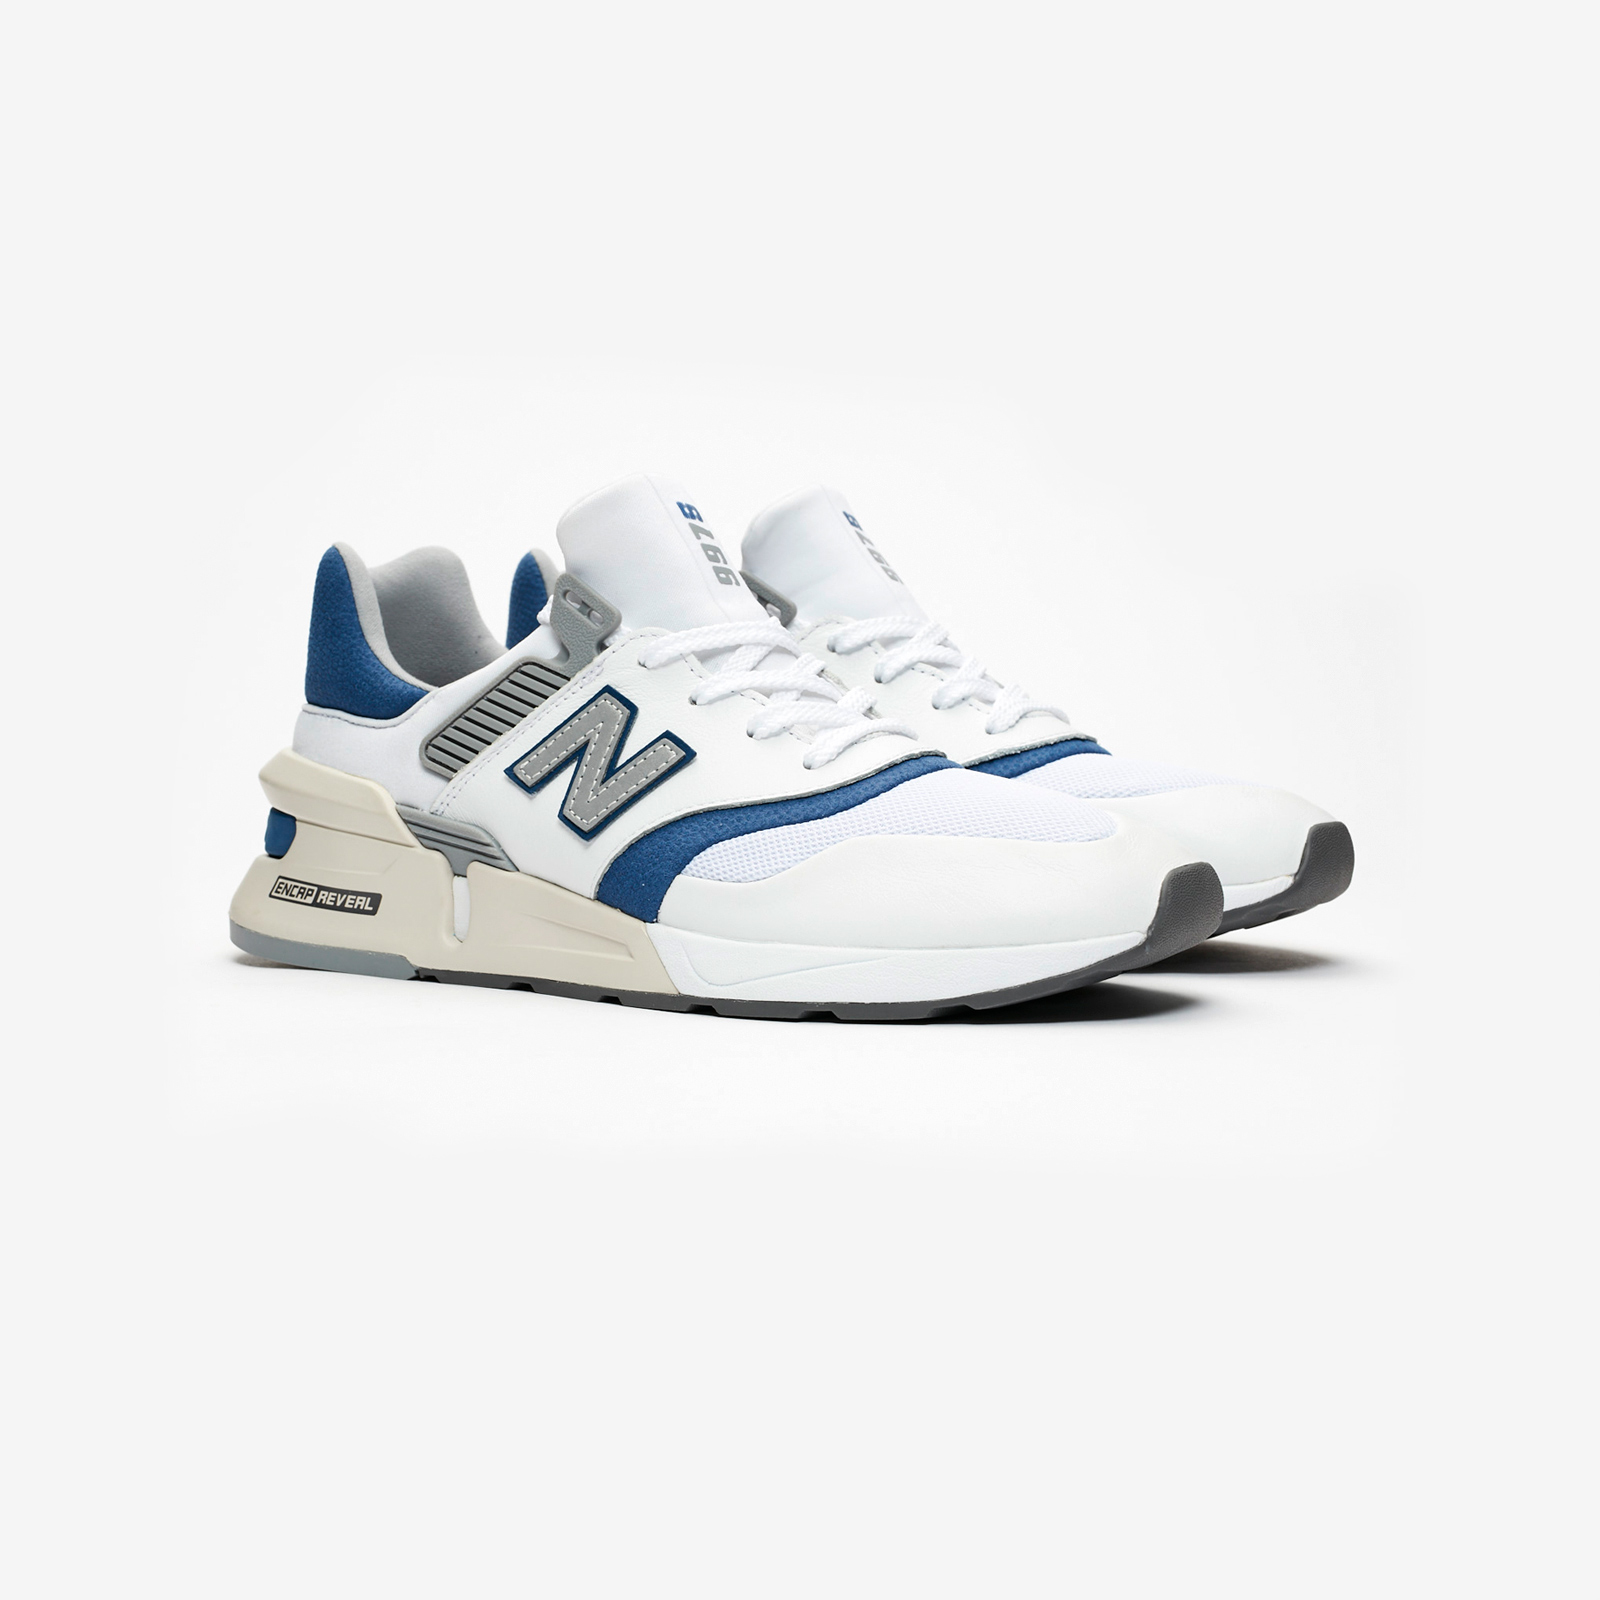 New Ms997hgd Sneakers Ms997 Balance Sneakersnstuff I hQrtsdC